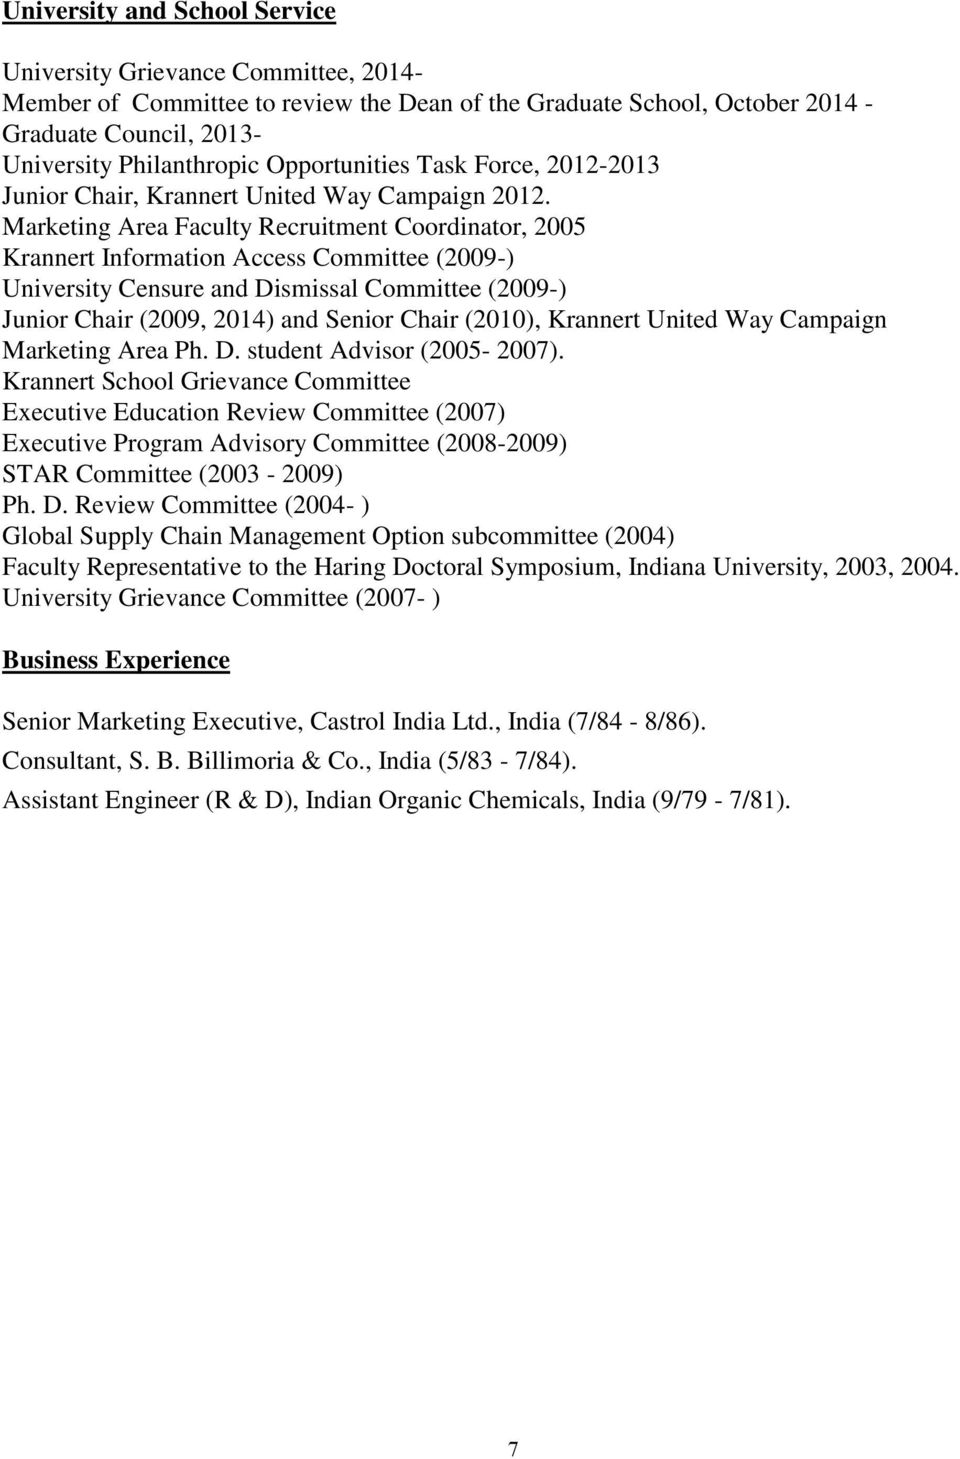 Marketing Area Faculty Recruitment Coordinator, 2005 Krannert Information Access Committee (2009-) University Censure and Dismissal Committee (2009-) Junior Chair (2009, 2014) and Senior Chair